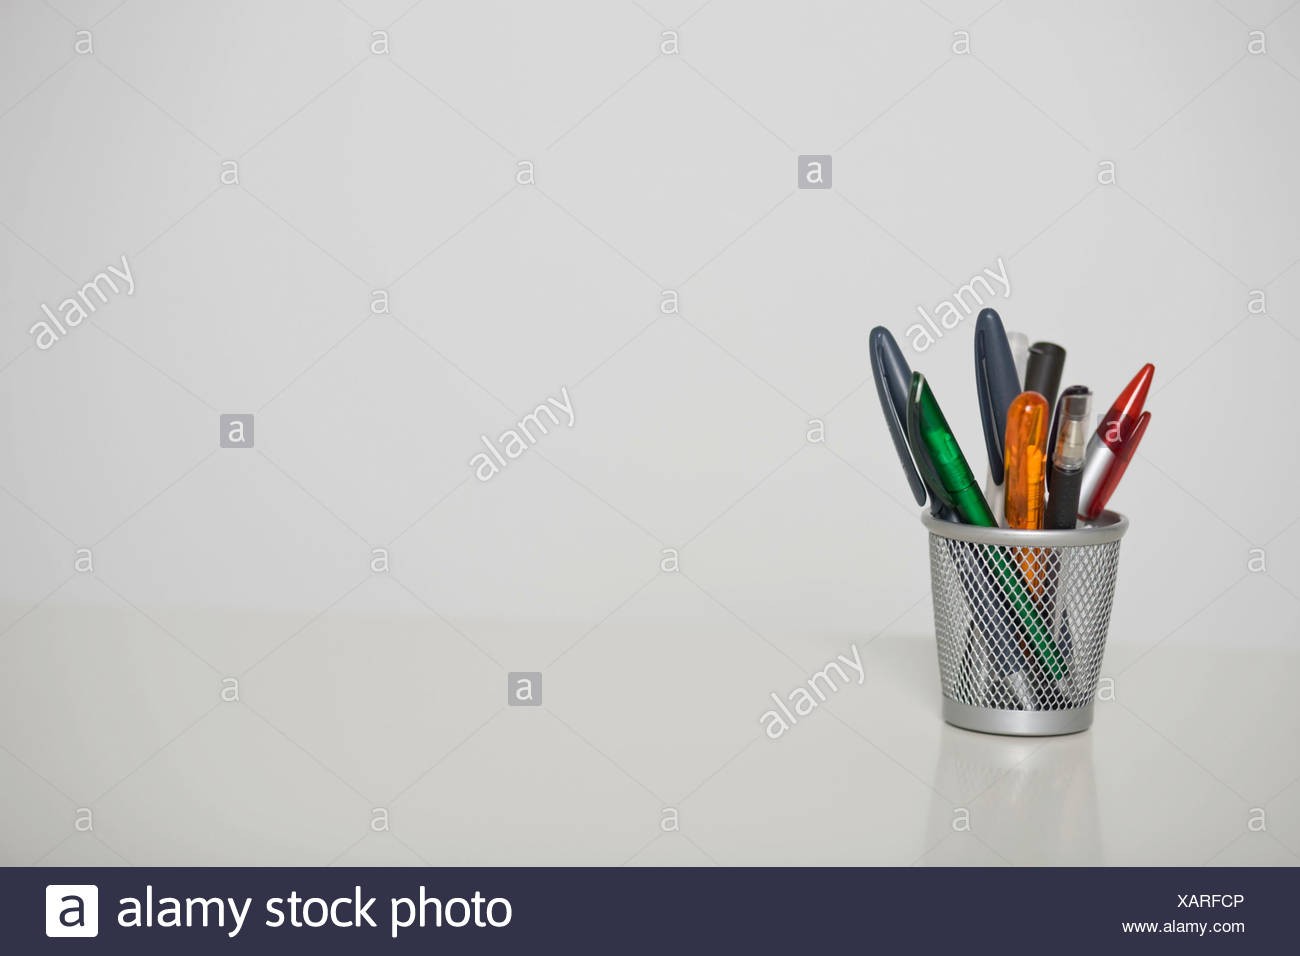 Pens in a pencil holder Stock Photo